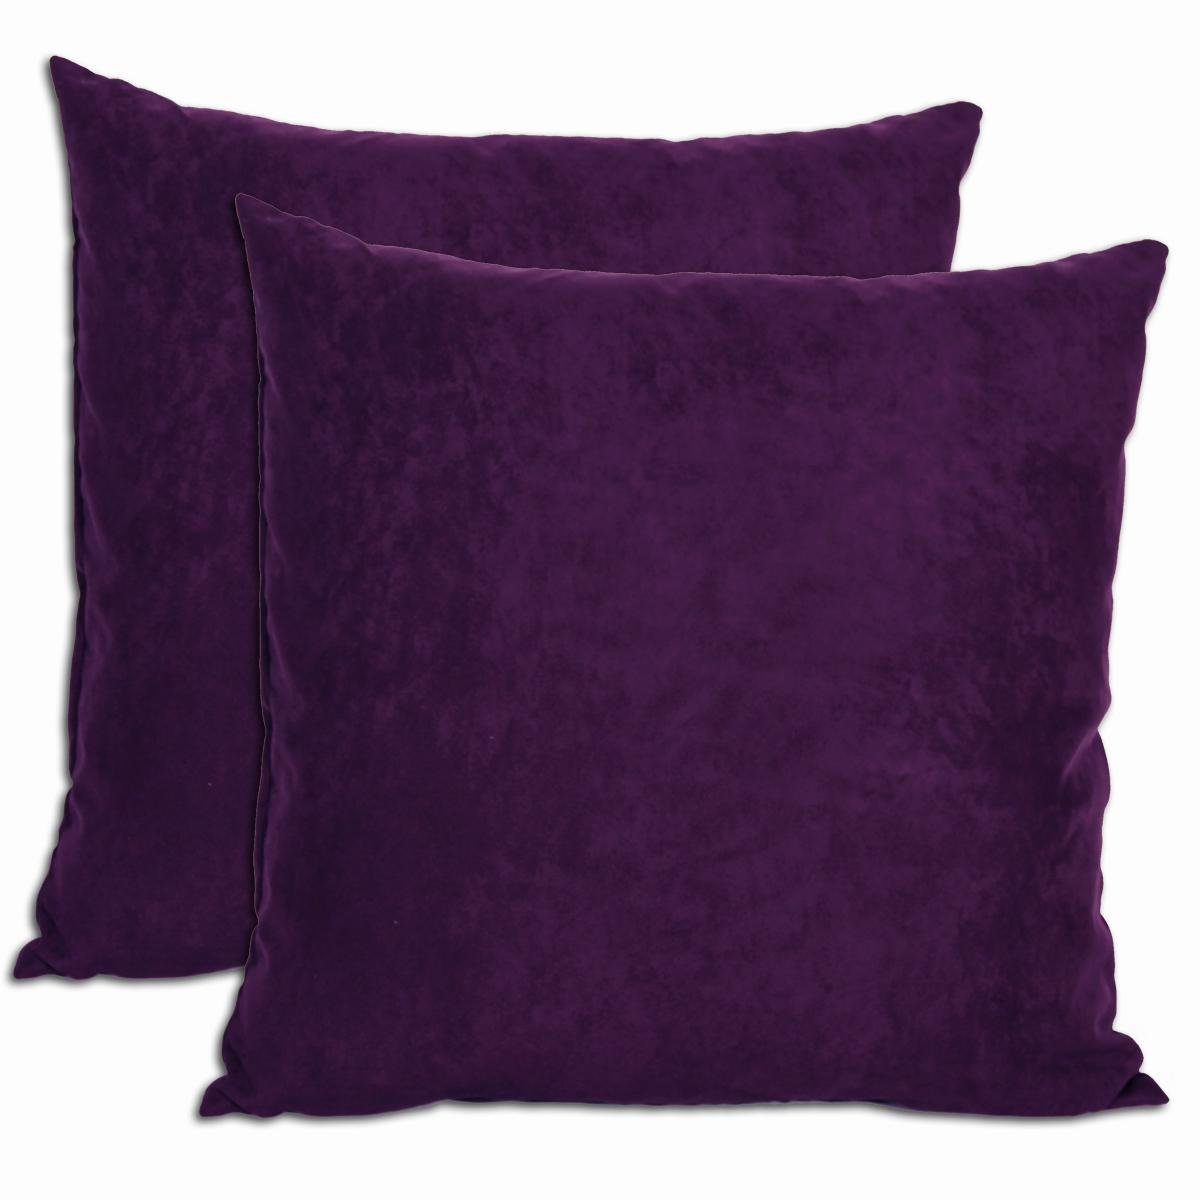 Purple Microsuede Feather and Down Filled Throw Pillows (Set of 2) by Purple Microsuede